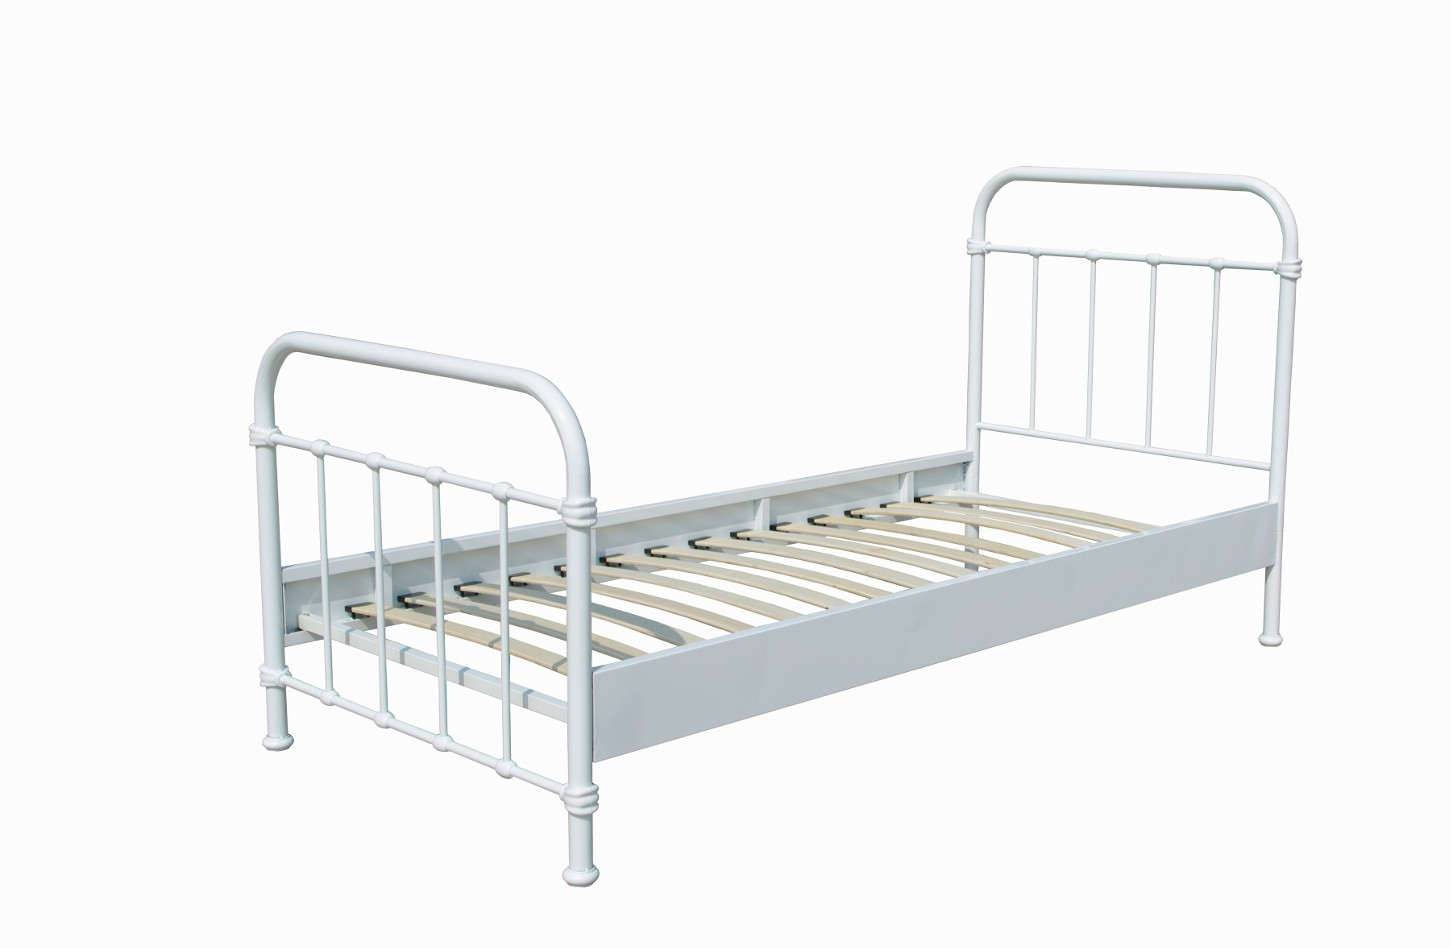 firenze black metal bed frame with crystal knobs metal bed rails 00010 asst metal bed rails. Black Bedroom Furniture Sets. Home Design Ideas